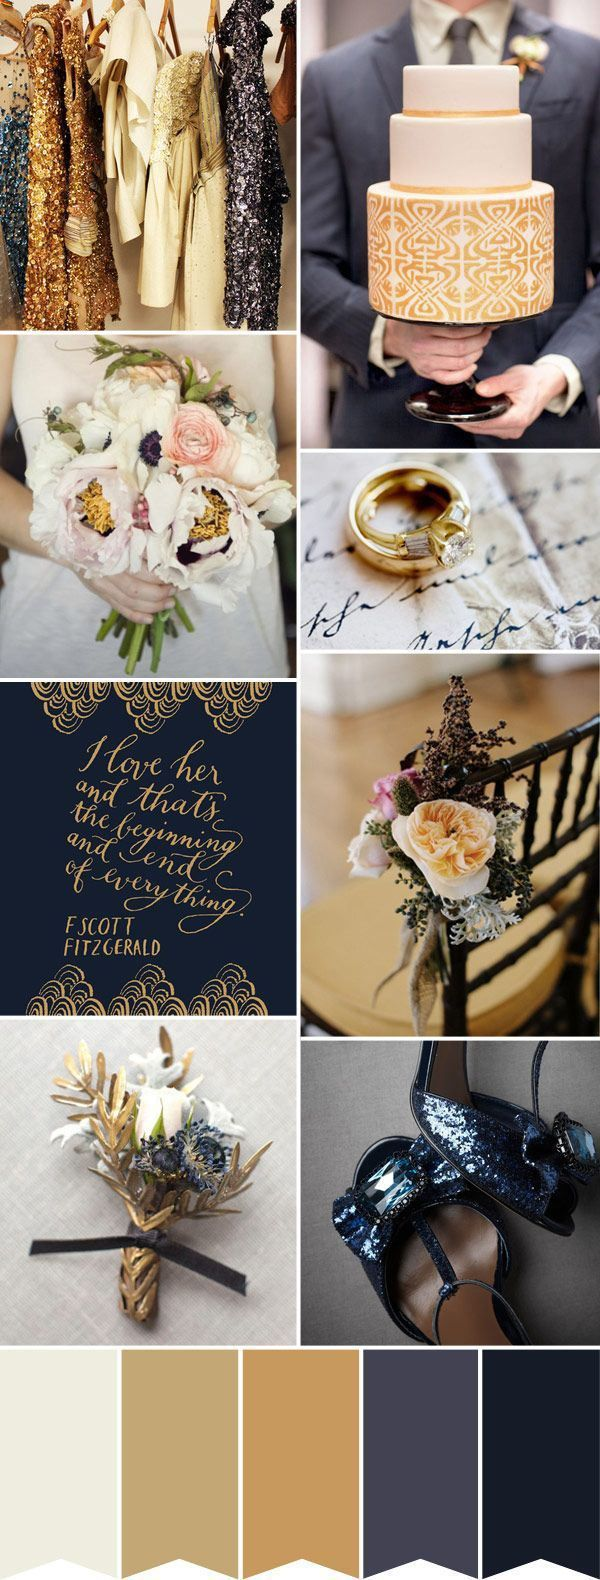 Wedding Color Schemes For All 4 Seasons - Bridal Bliss Buzz